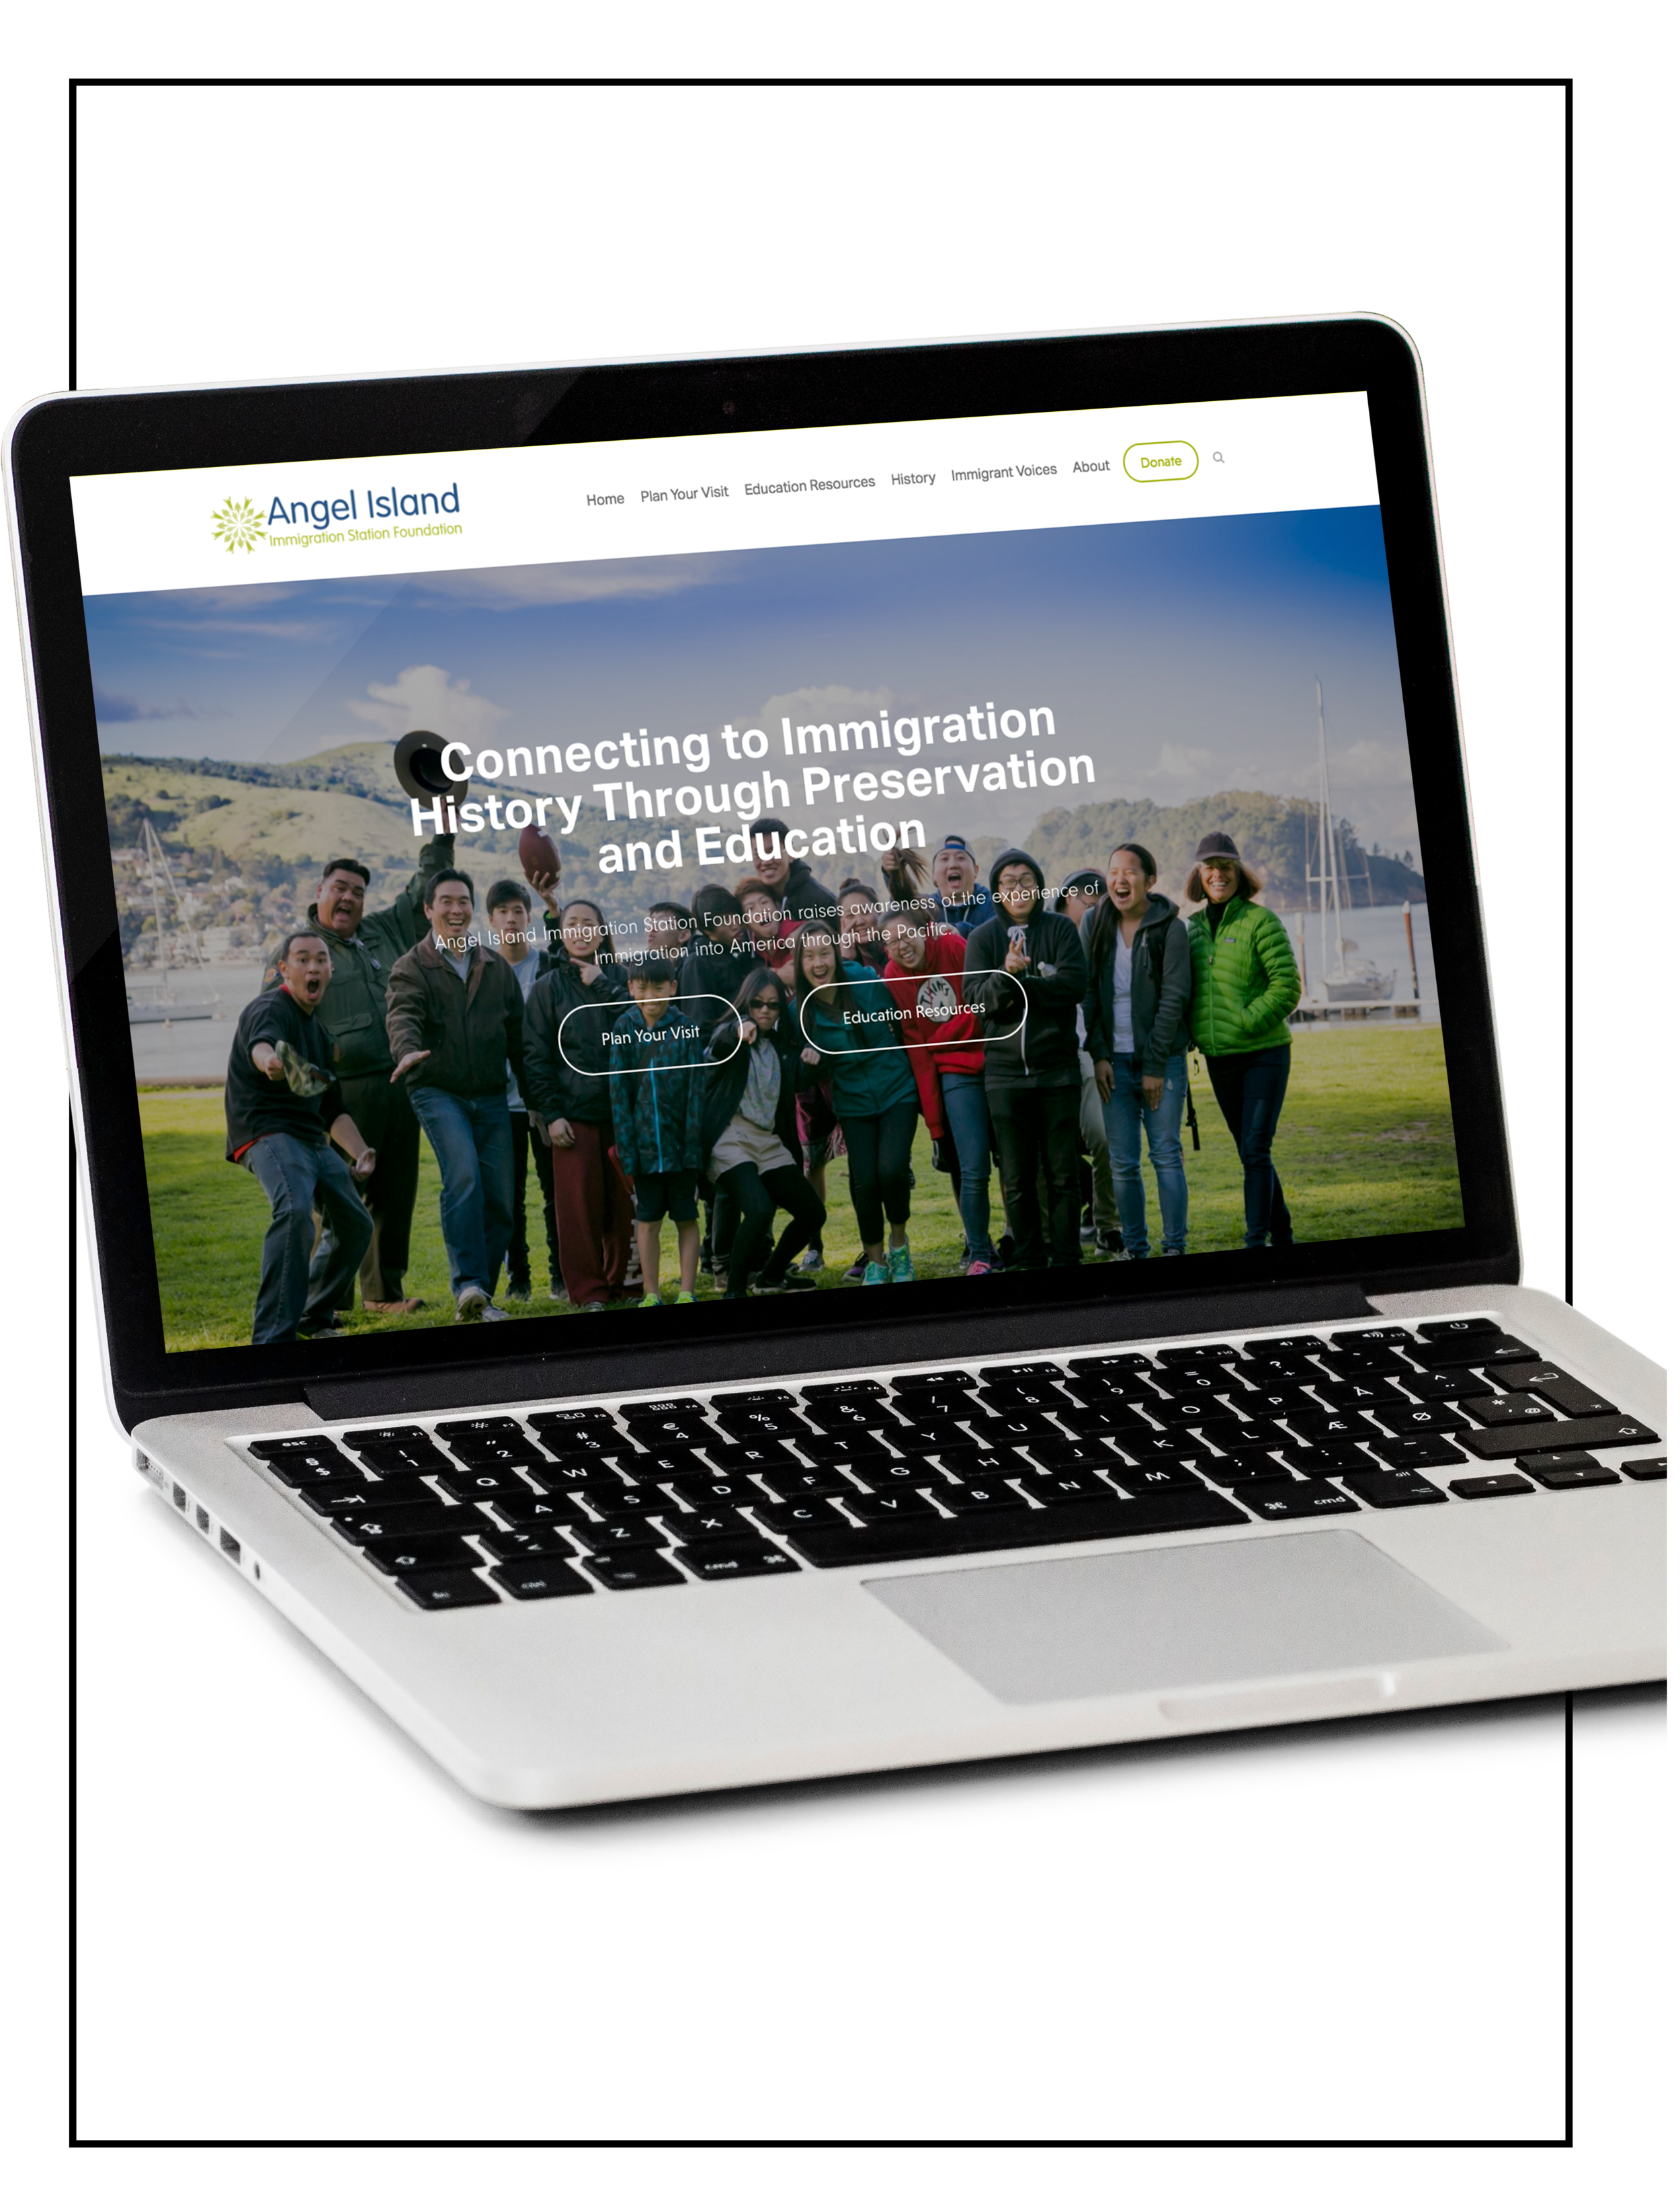 Showcasing an image of a laptop with a website build of Spacebar Agency -  AIISF Non Profit - SF